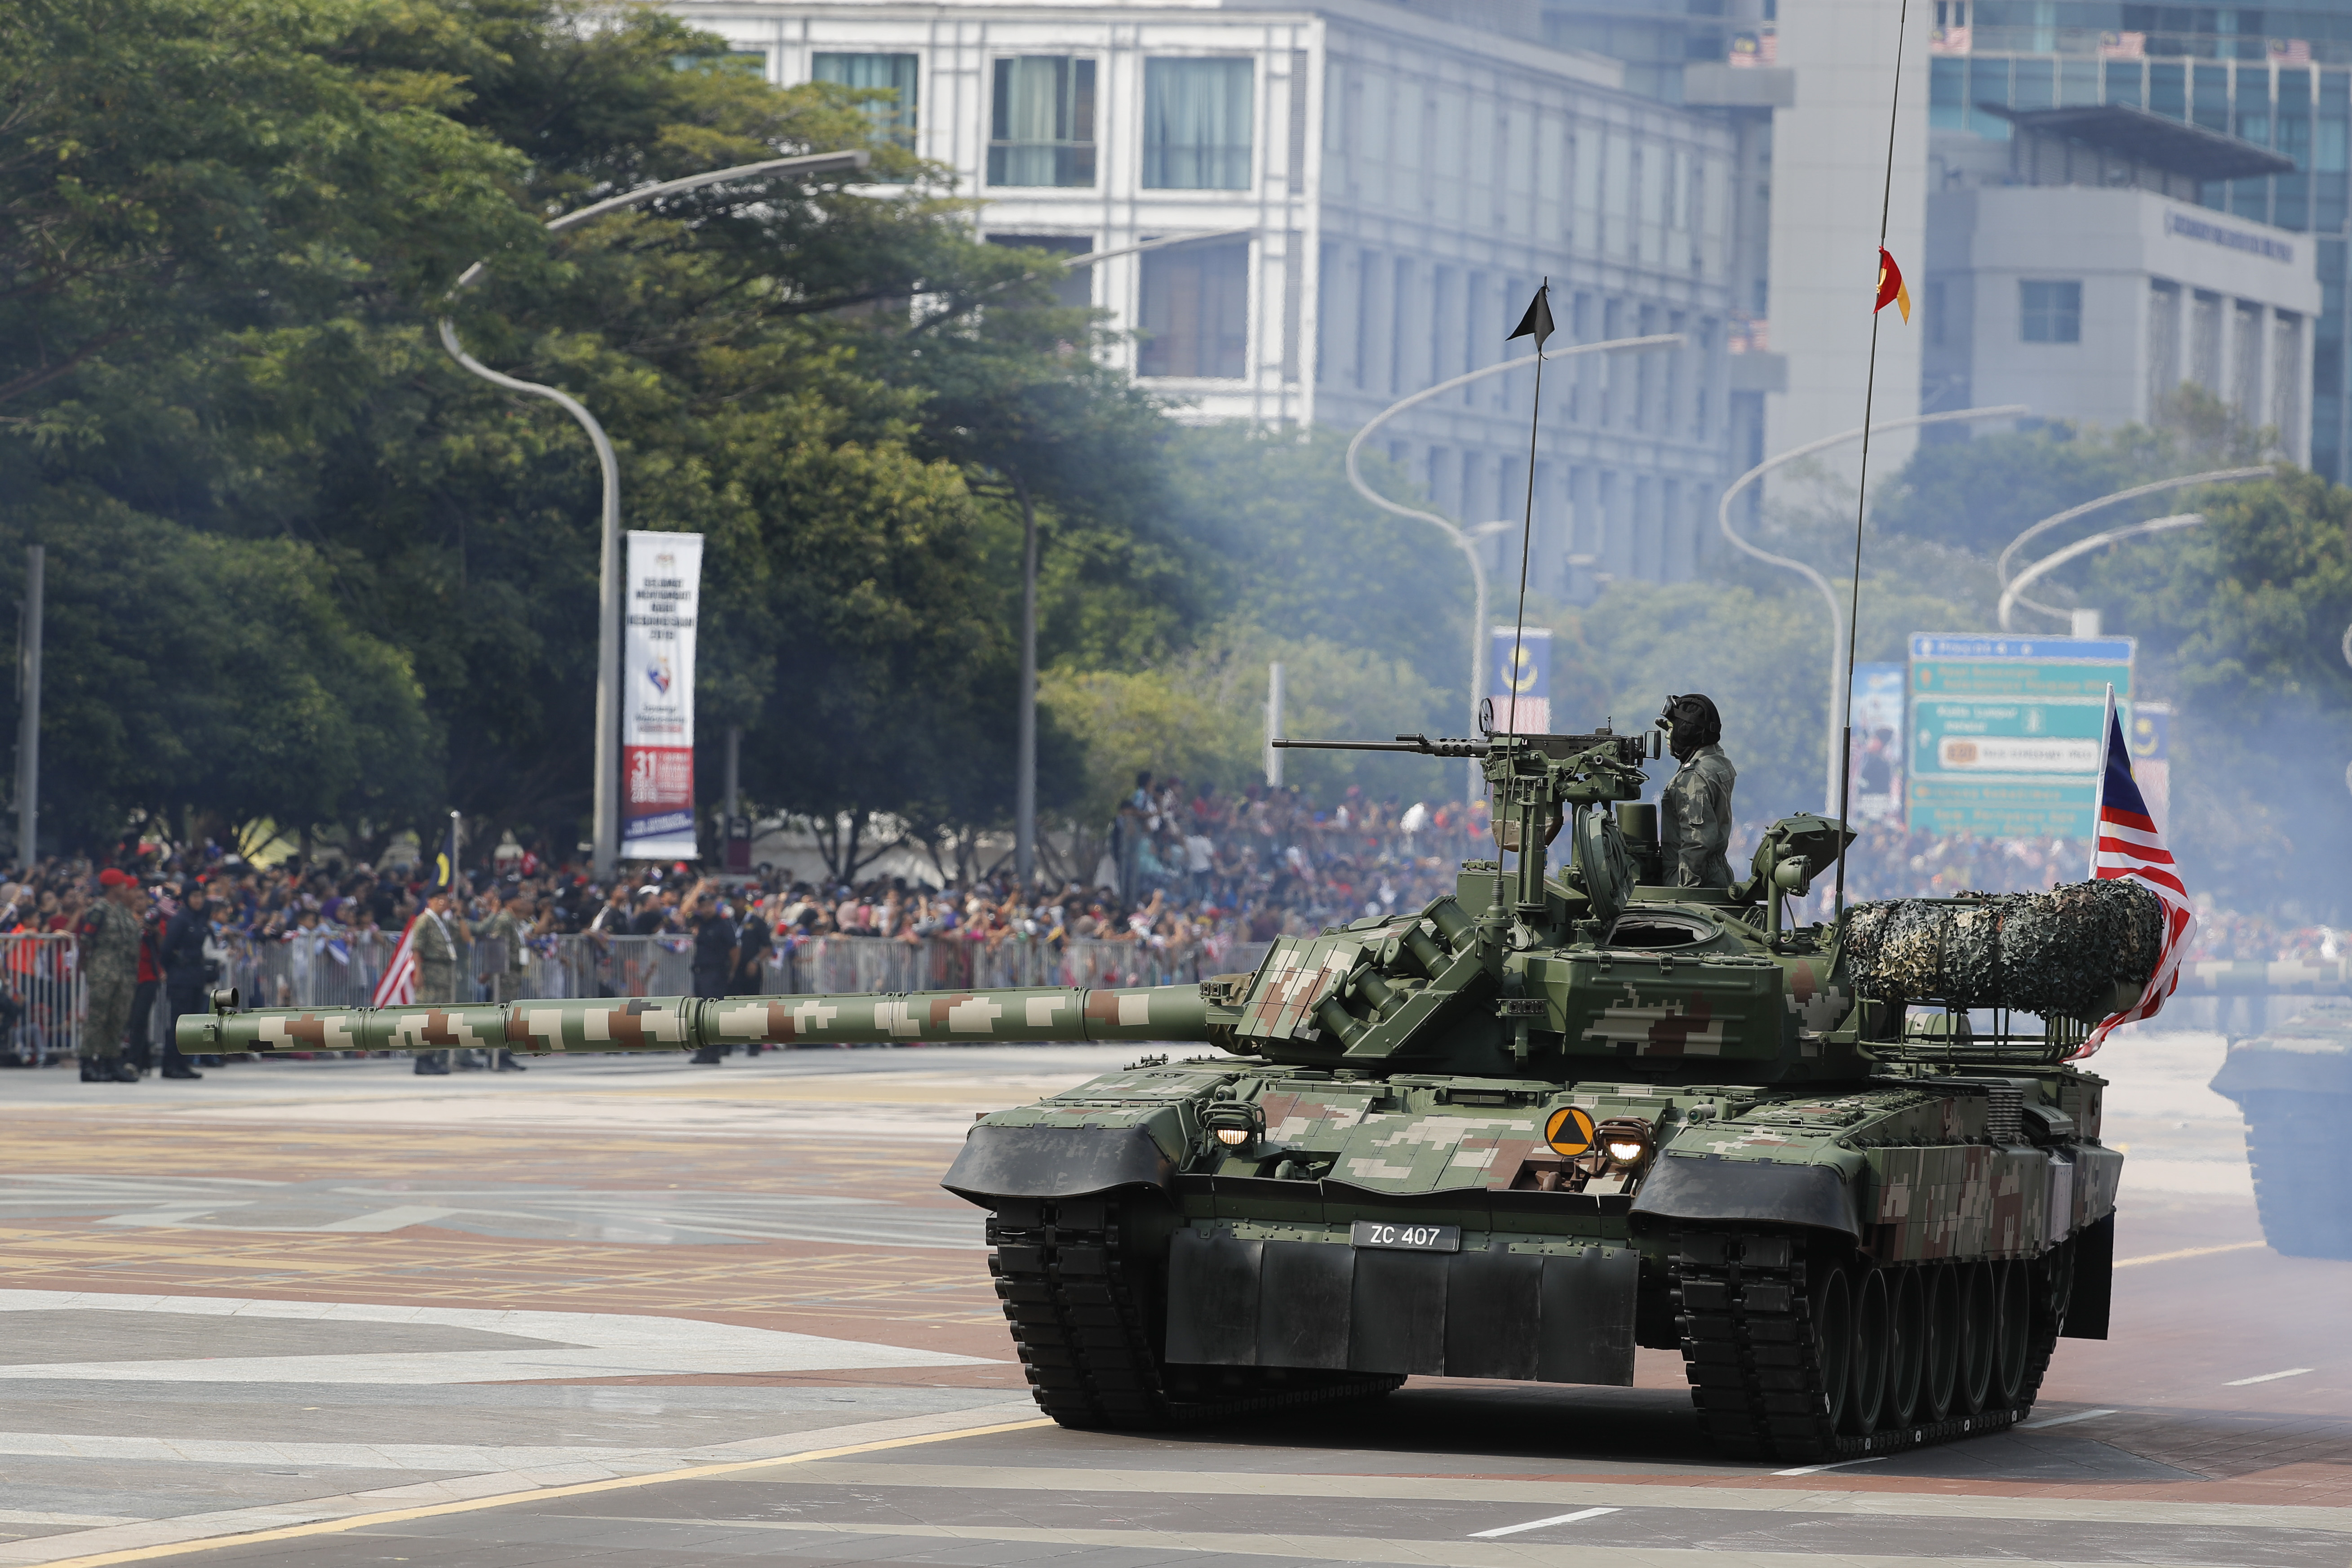 Malaysian military personnel take part in the 62nd Independence Day celebrations parade in Putrajaya, Malaysia Saturday, Aug. 31, 2019. The Federation of Malaya gained its independence from Britain on Aug. 31, in 1957. (AP Photo/Vincent Thian)